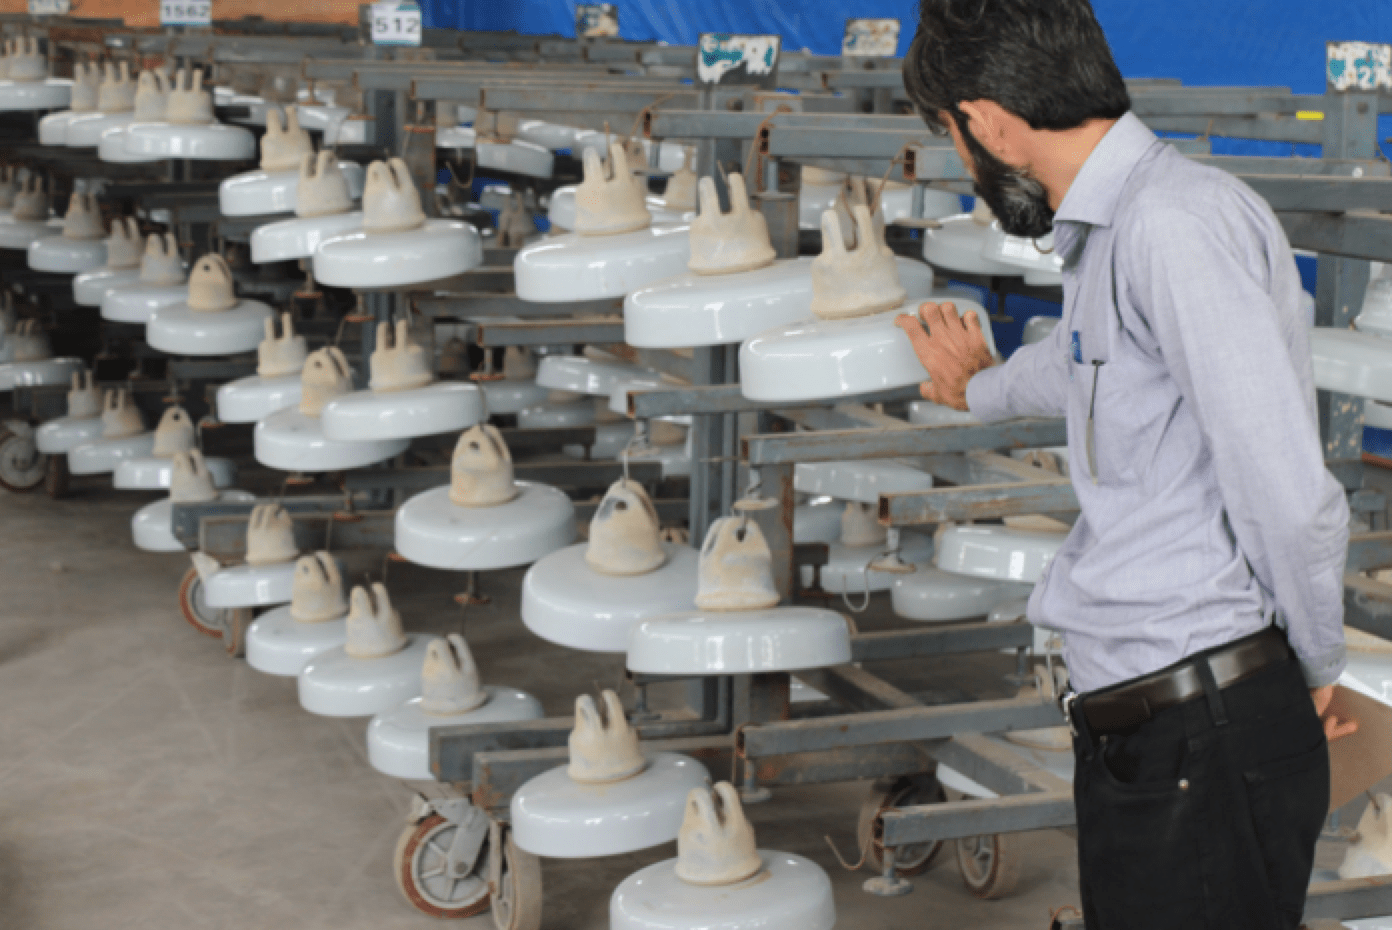 Transmission Grid in Pakistan Confronts Dual Challenges of Pollution & Icing (Part 1 of 2) Insulators removed from lines are cleaned and readied for coating with RTV silicone material